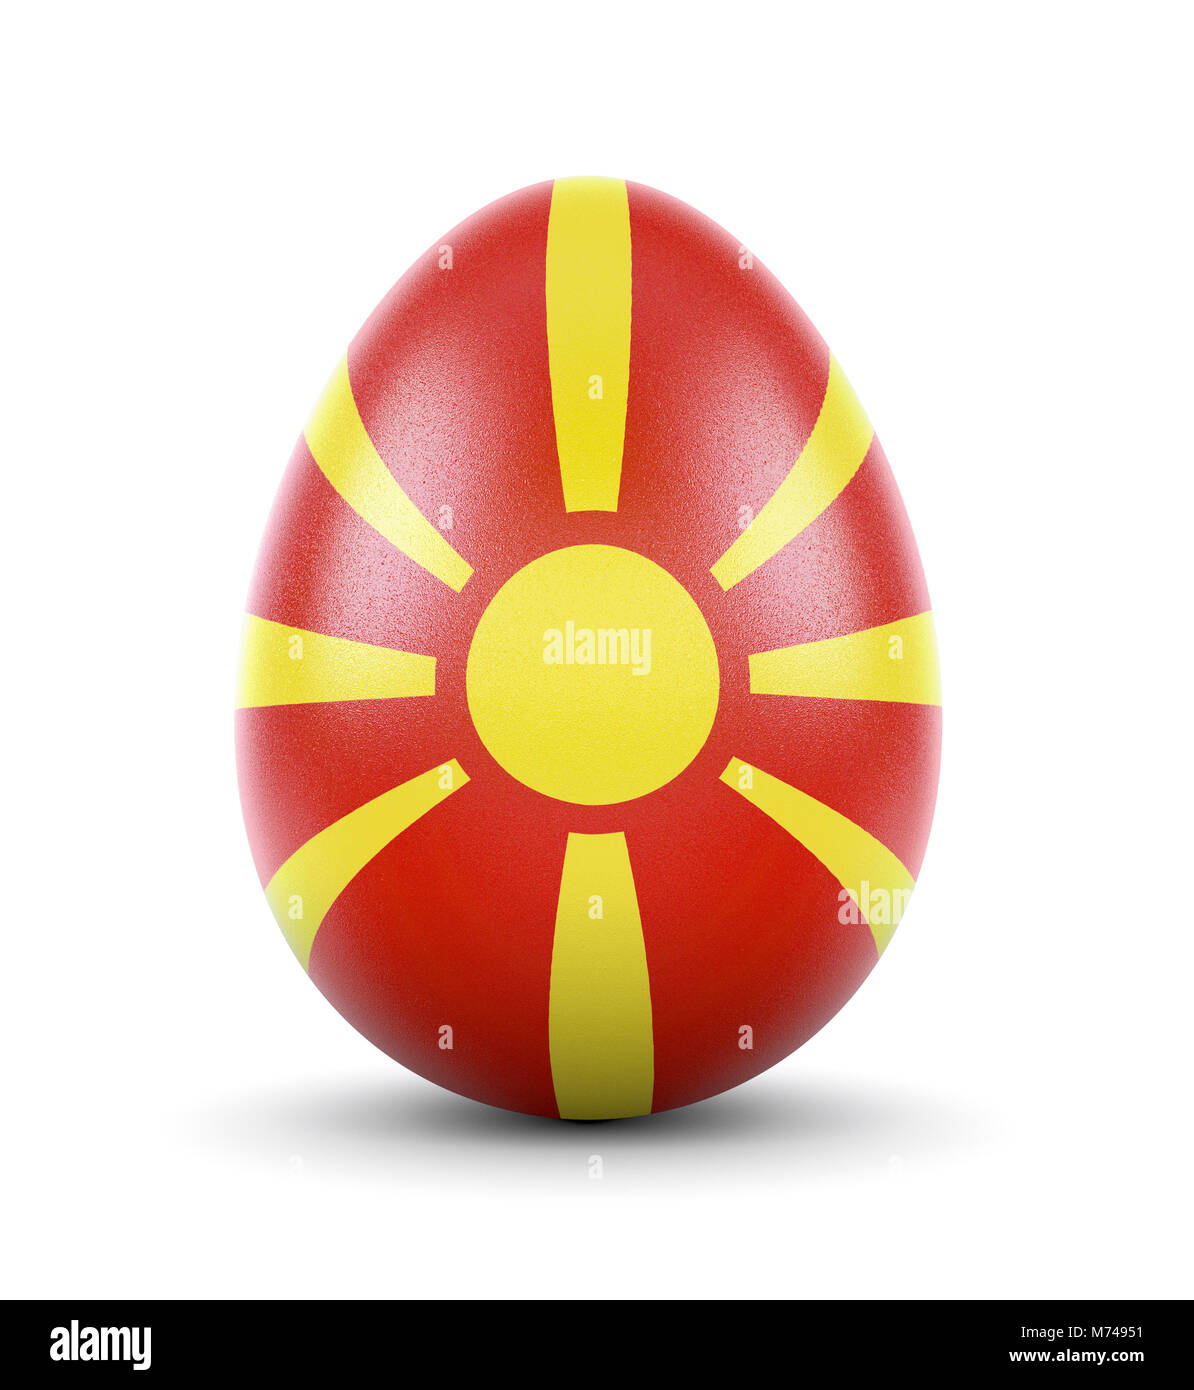 High quality realistic rendering of an glossy egg with the flag of Macedonia.(series) - Stock Image